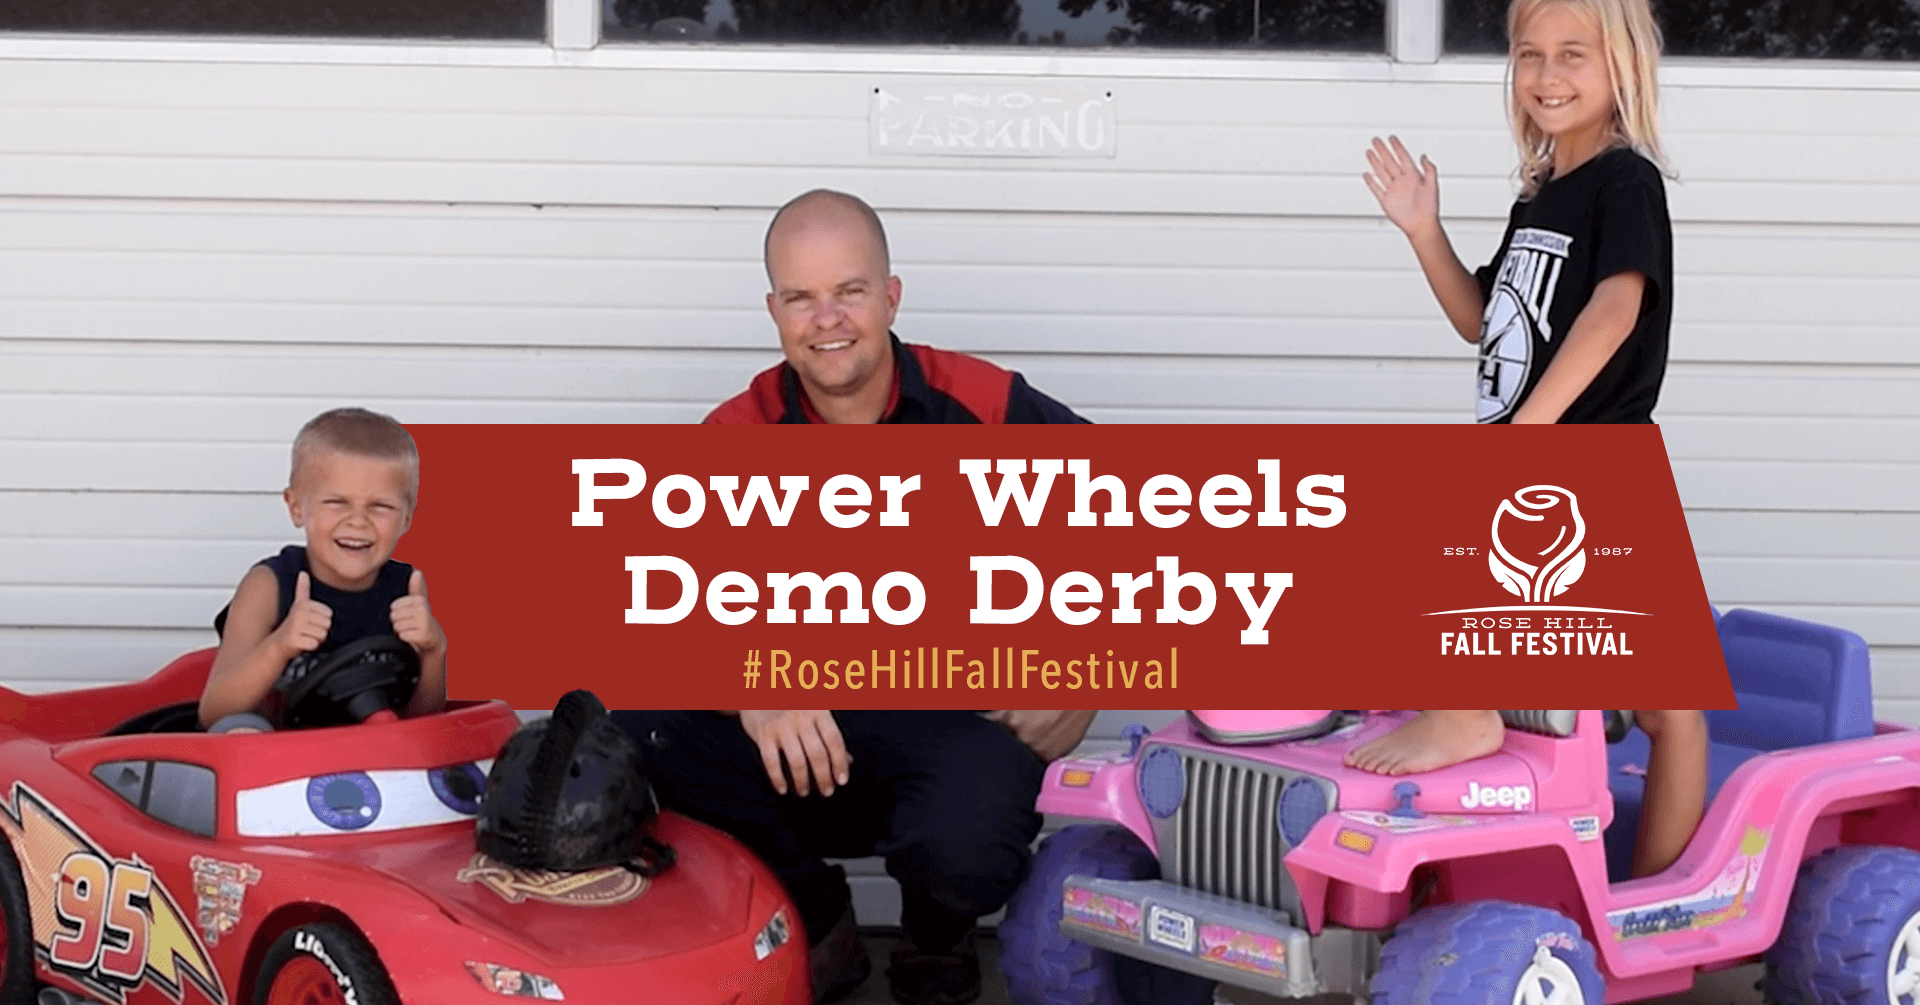 Power Wheels Demo Derby